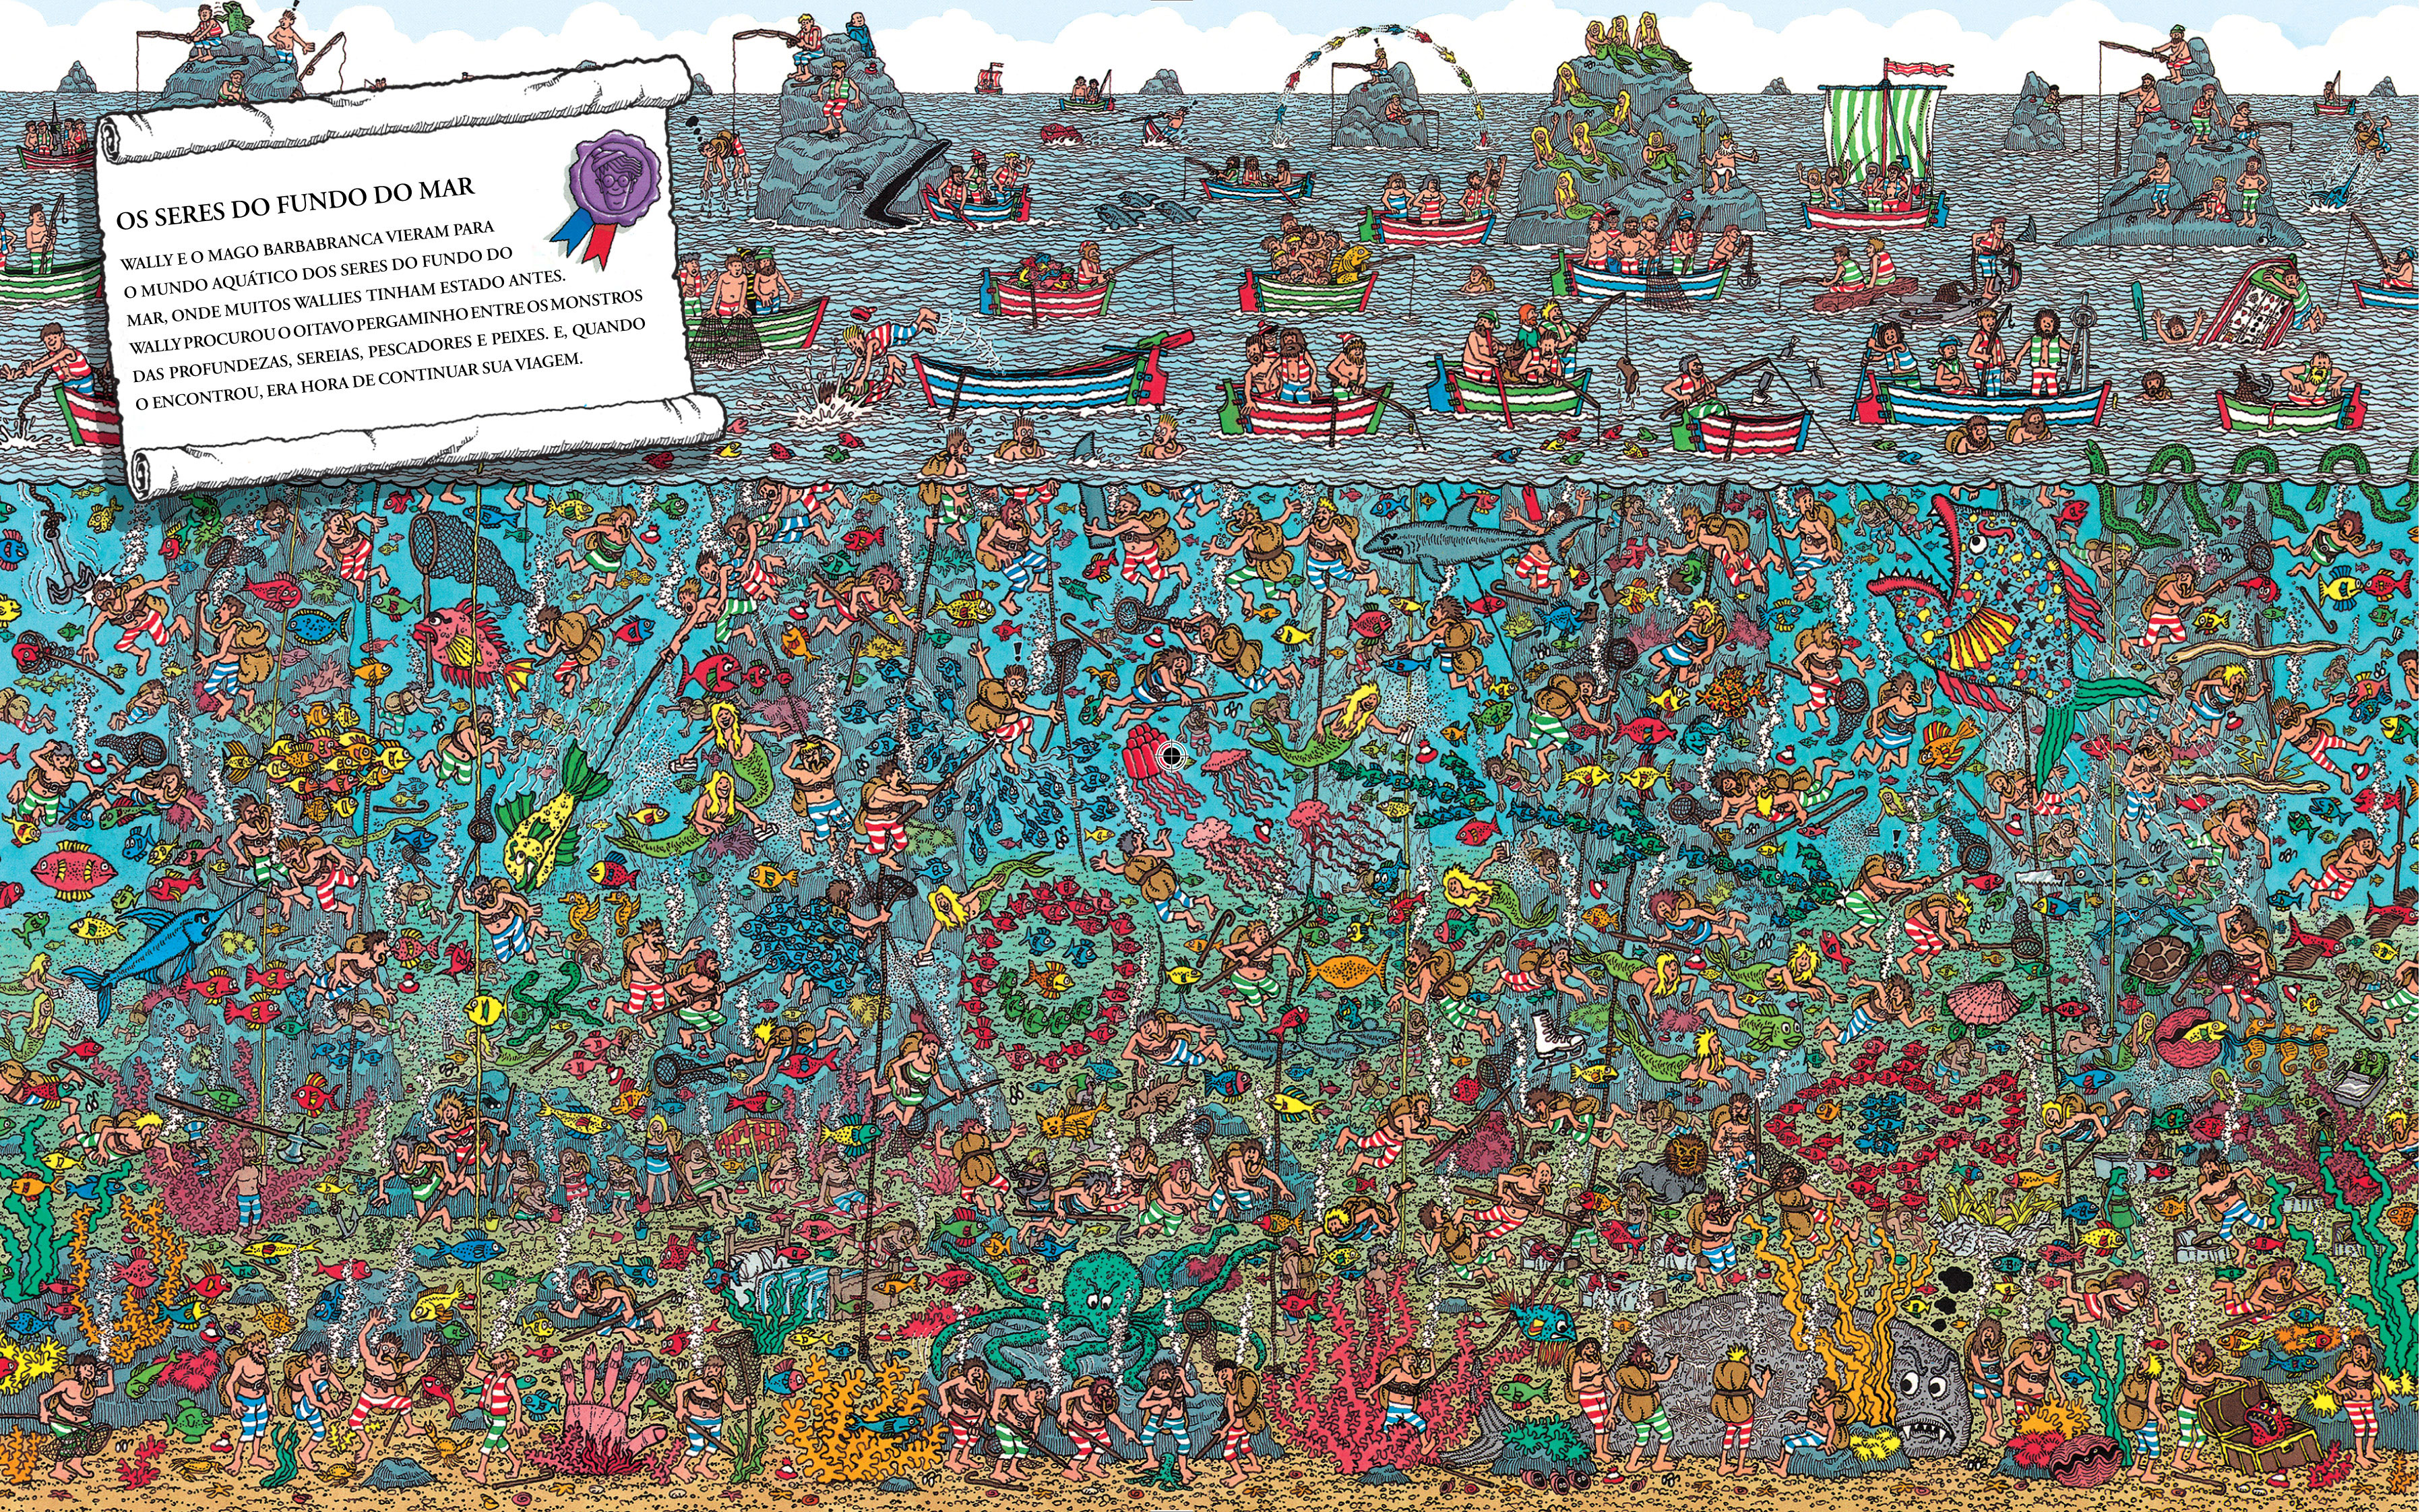 Where is Waldo? (Martin Handford)